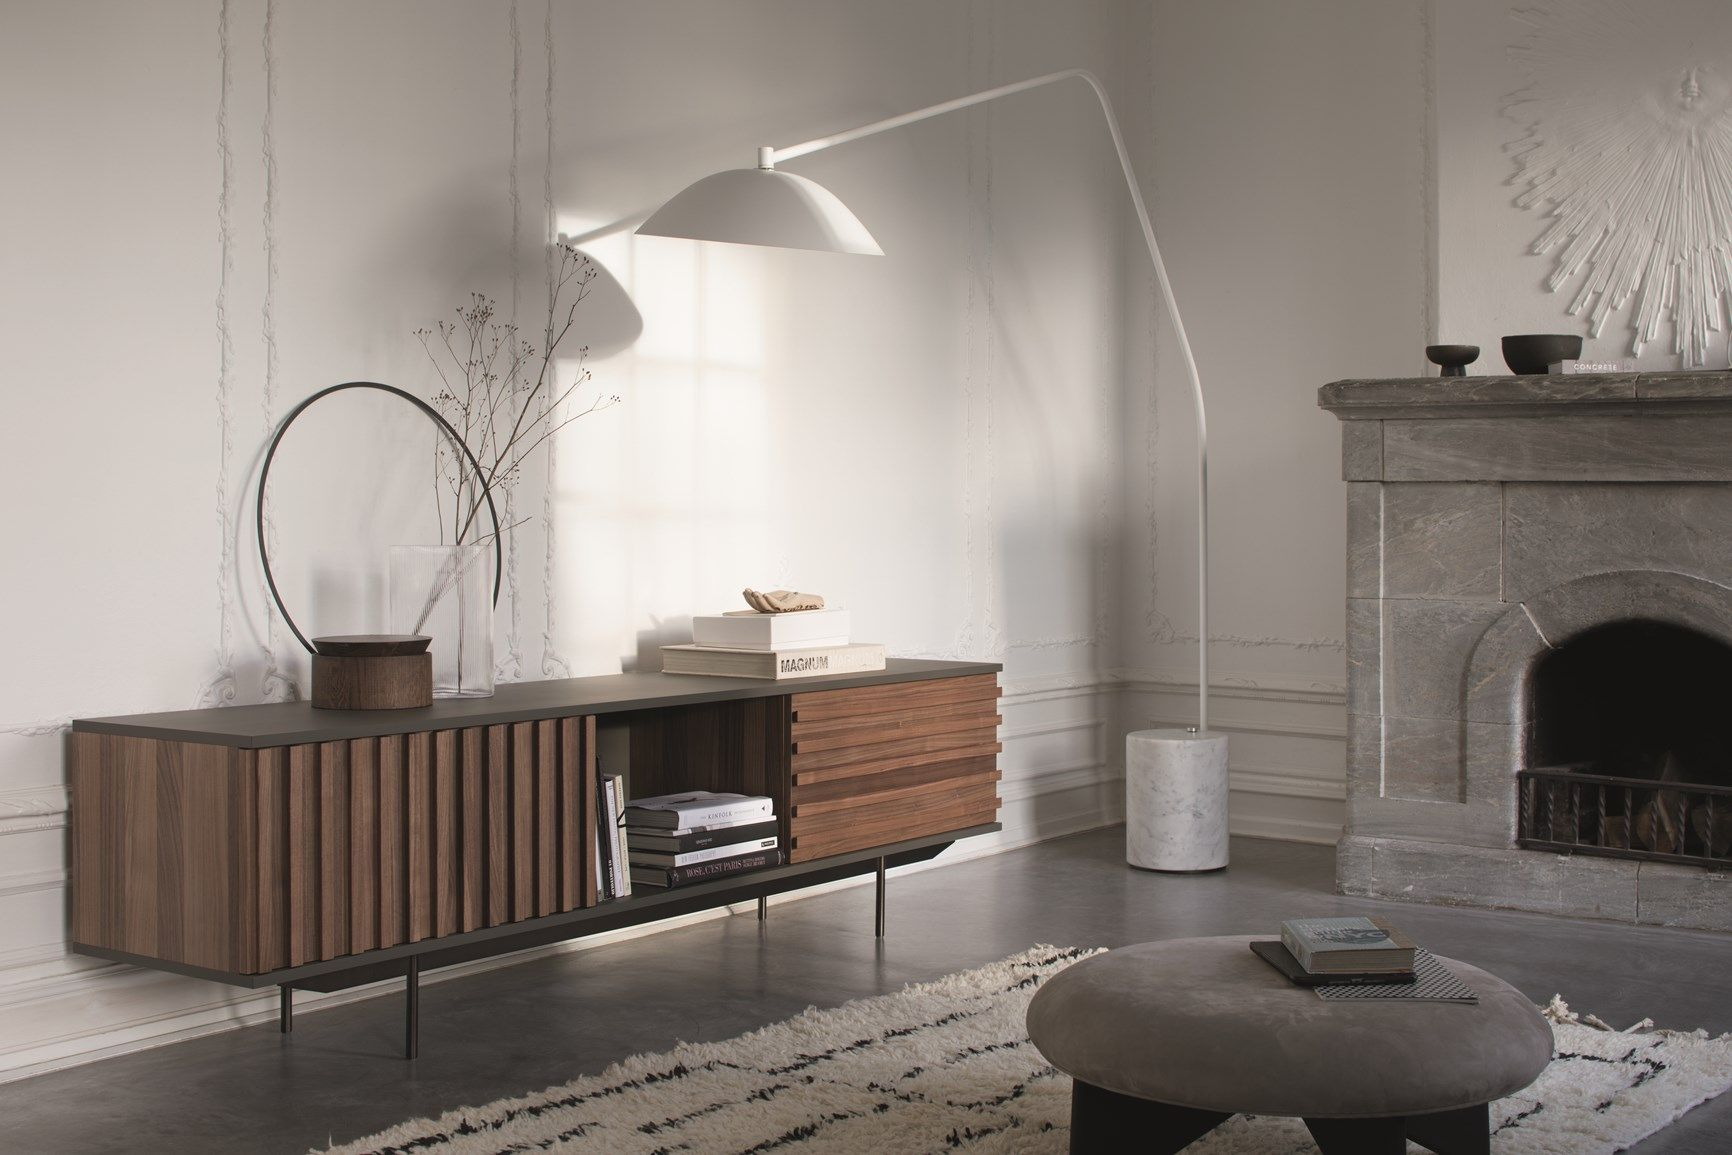 More Materials And Forms In Contrast Sideboard Furniture Retro Furniture Design Living Room Wall Units Sideboard in living room